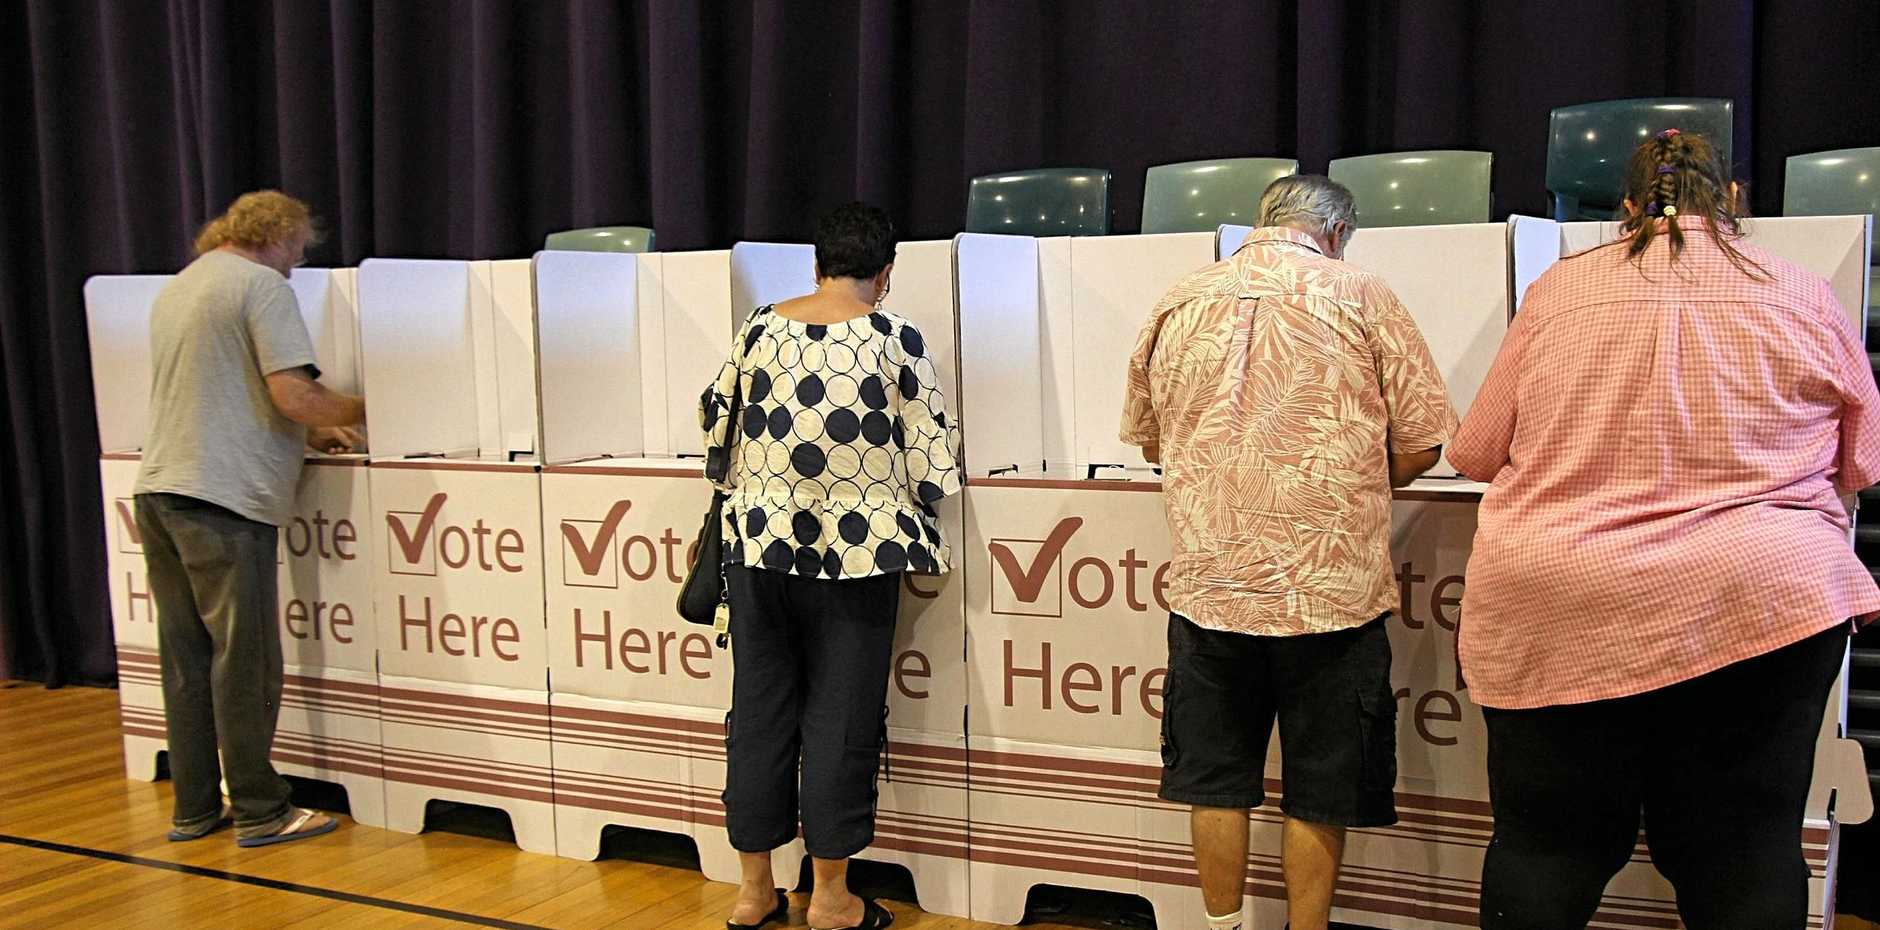 Voters in the electorate of Lockyer cast their votes for the 2017 Queensland election, November 25 2017. Generic stock-type photo.